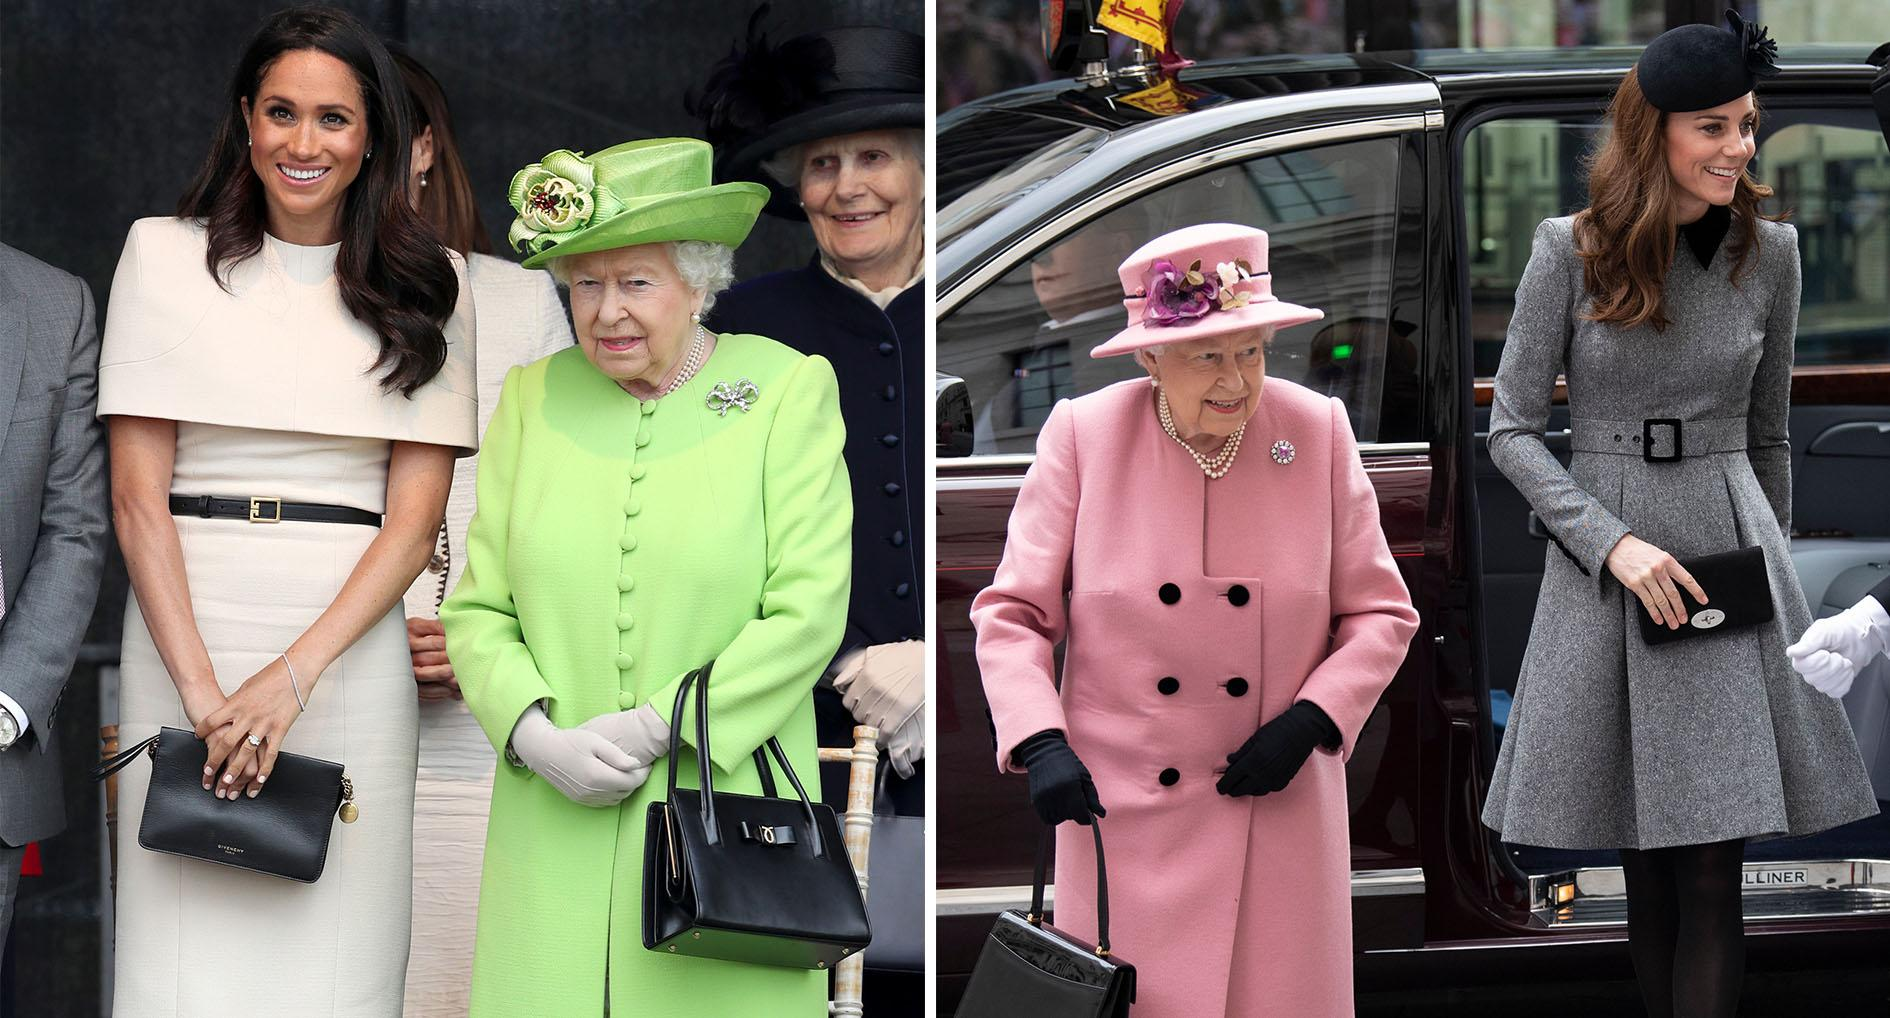 The Queen and Meghan in Cheshire, and Her Majesty and Kate at King's College London. [Photos: PA]